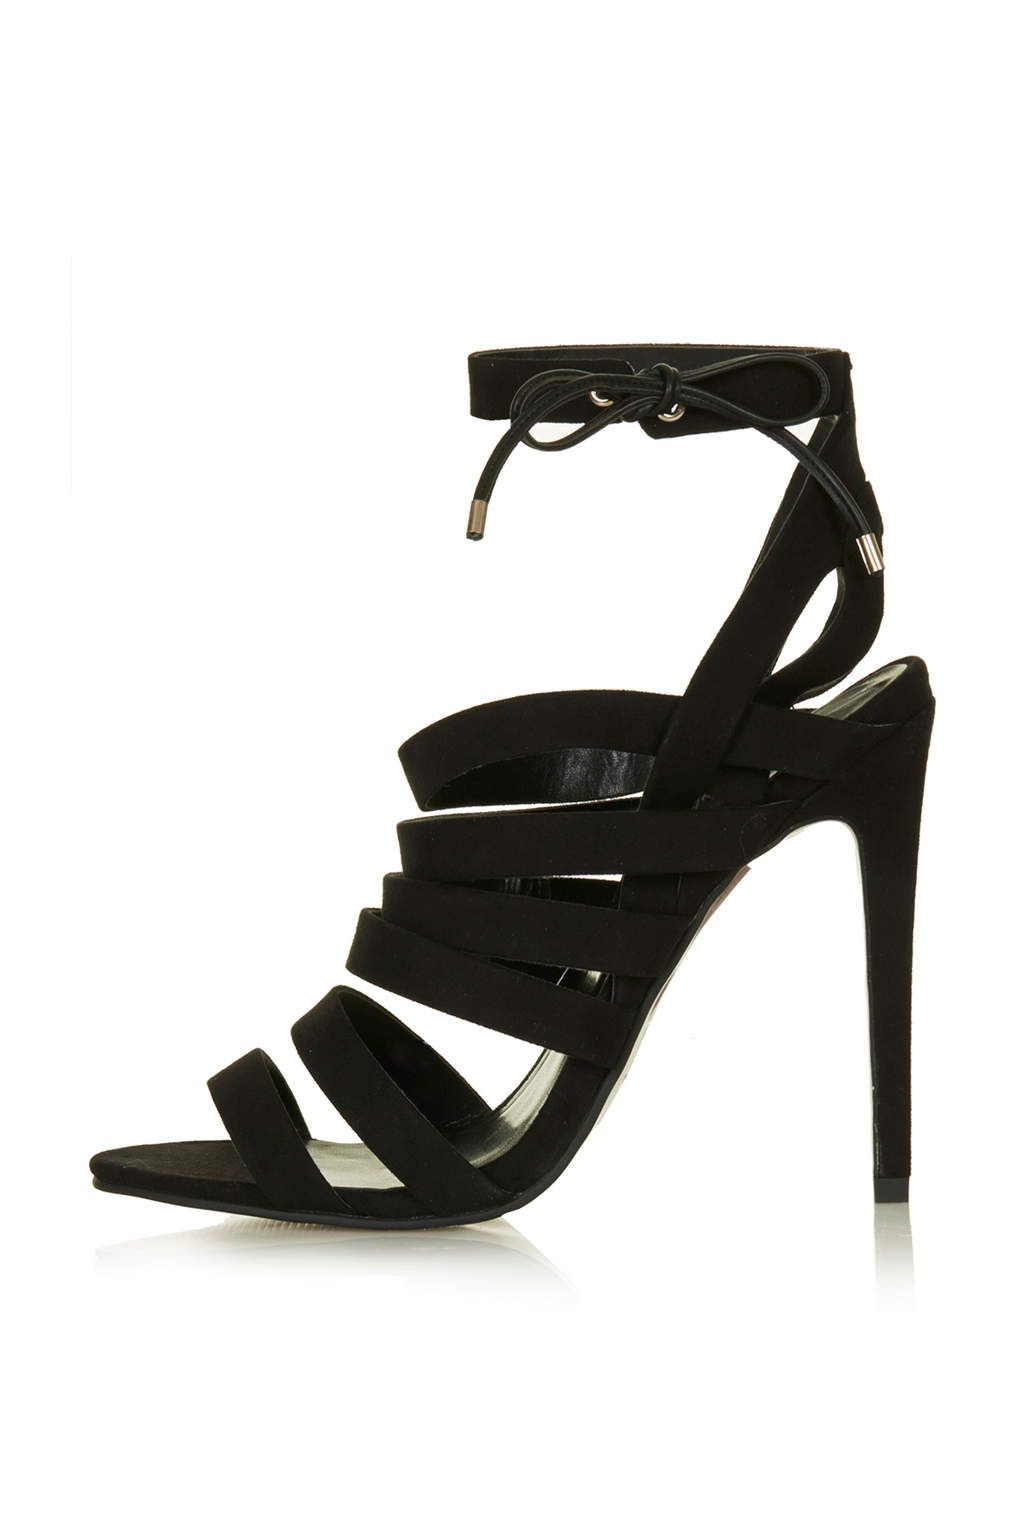 Rosie Strappy Sandals Heels Shoes Sandales A Bride Chaussures Talons Sandales A Lanieres